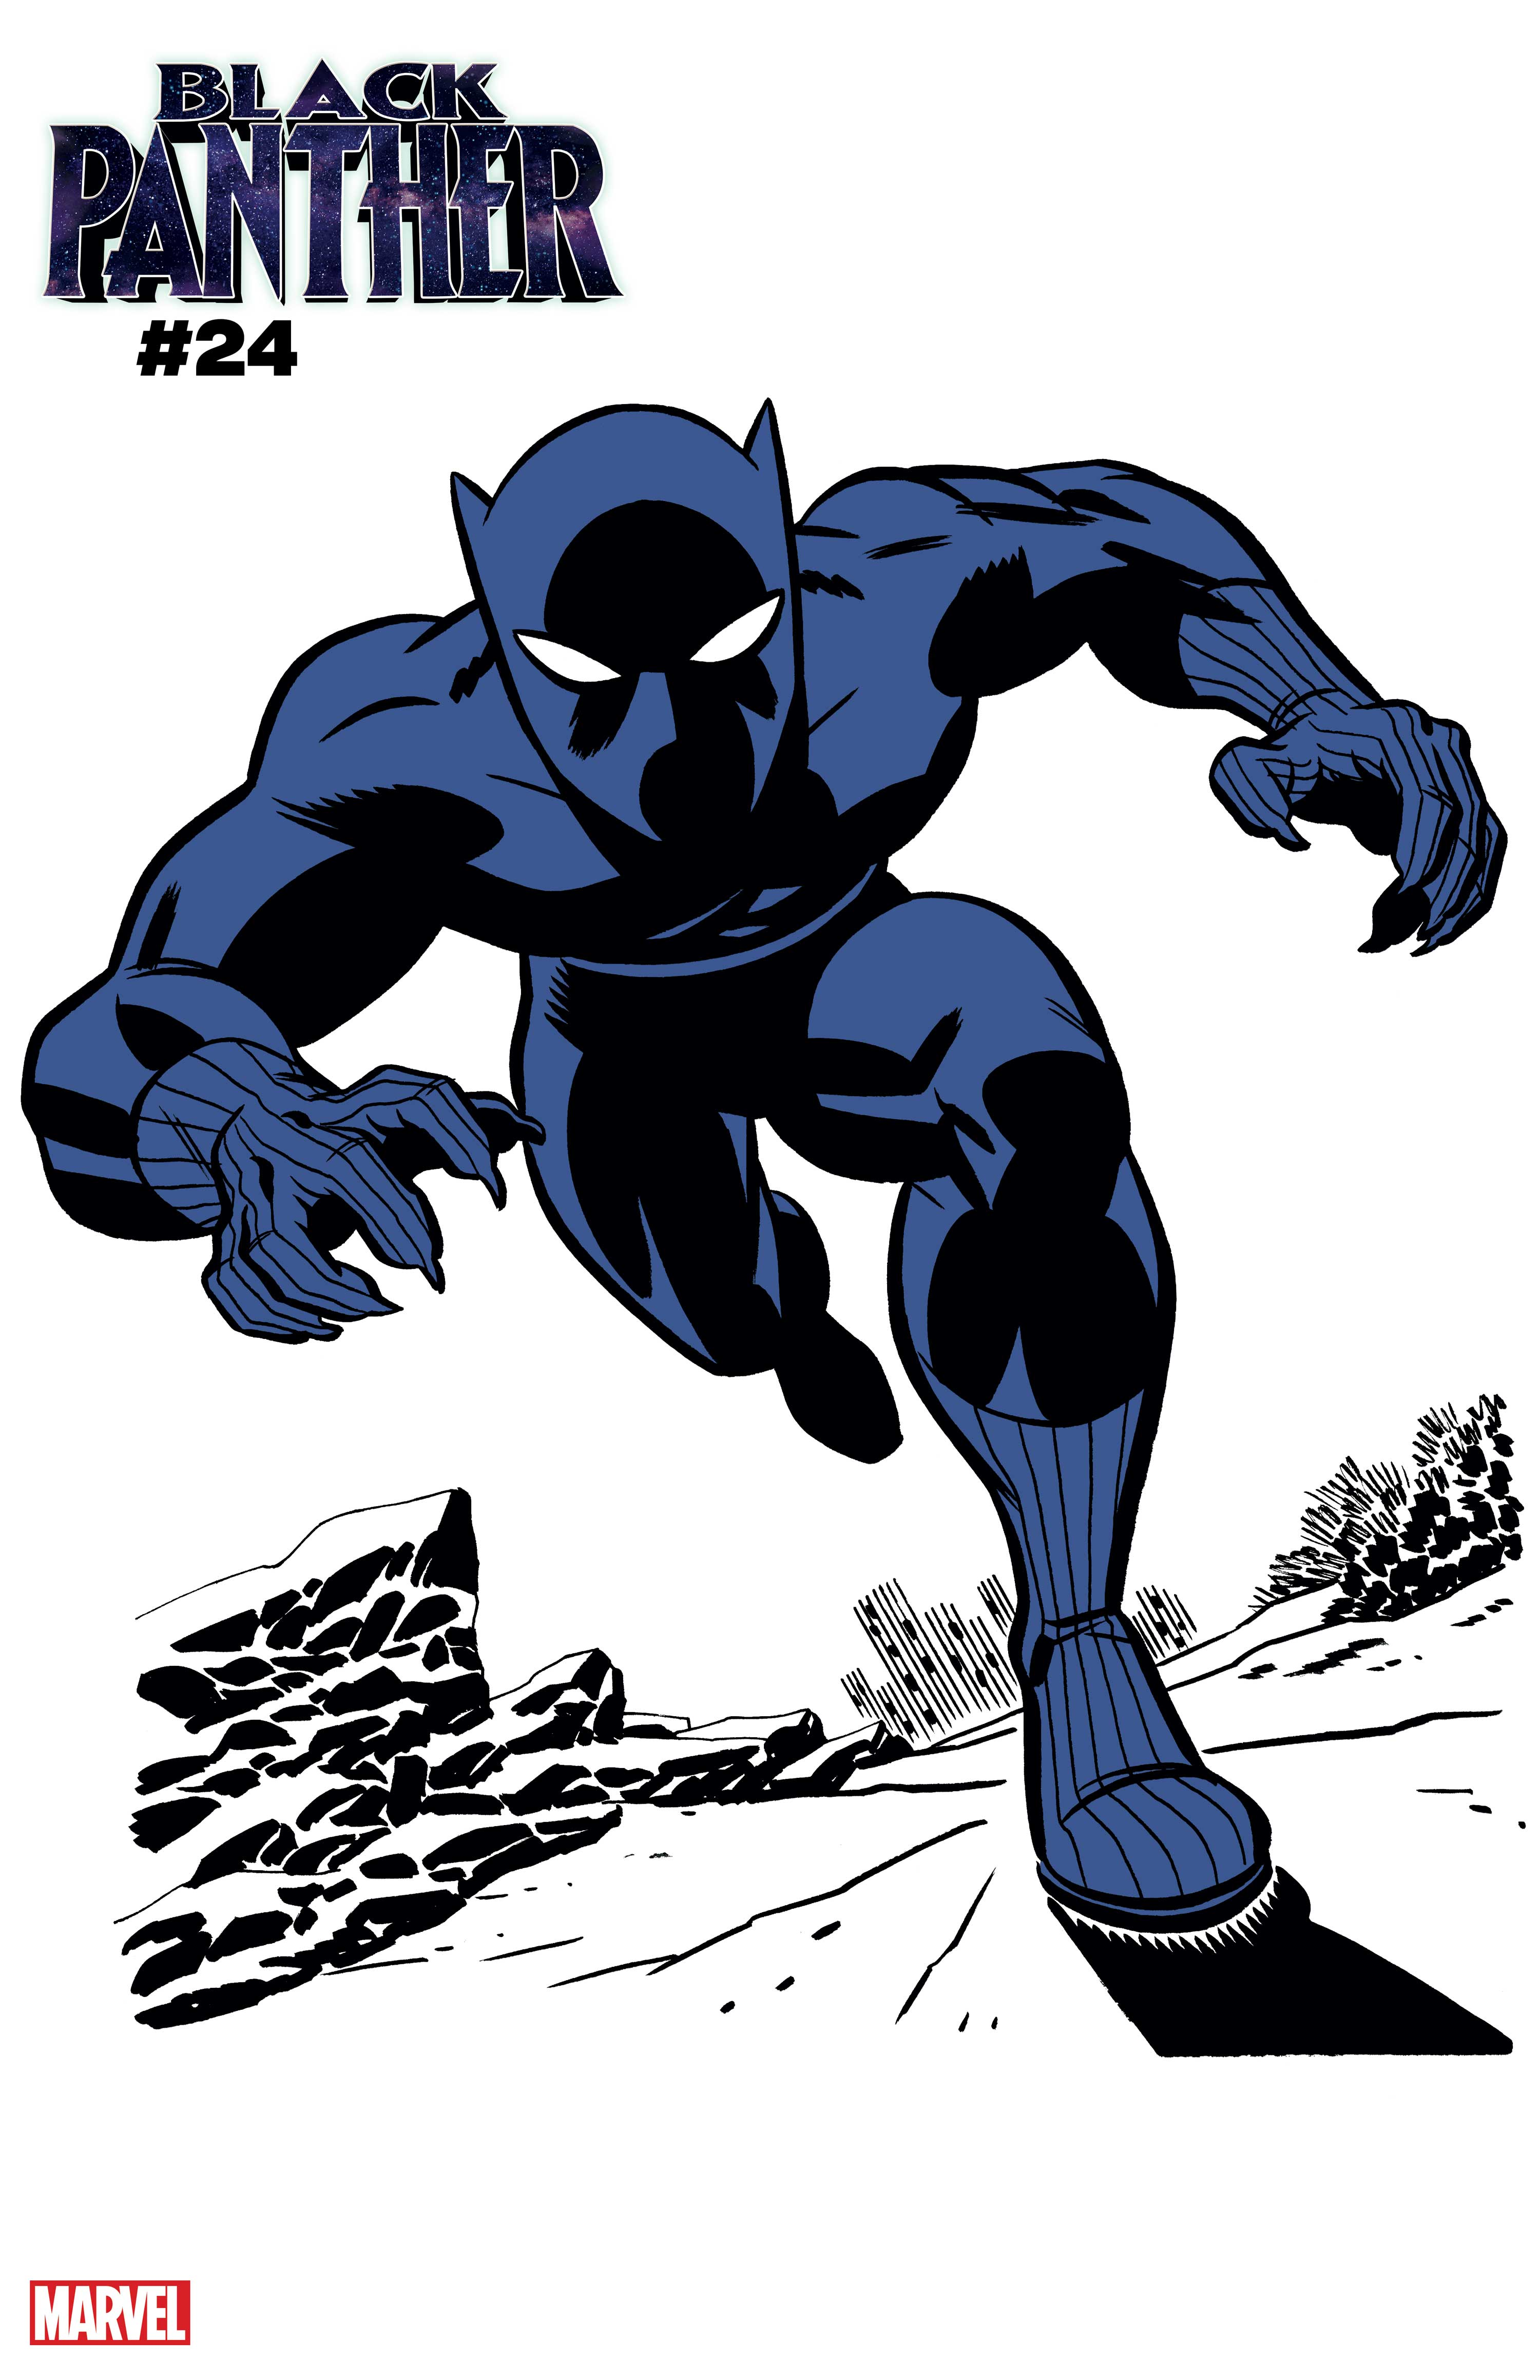 BlackPanther_24_Cho